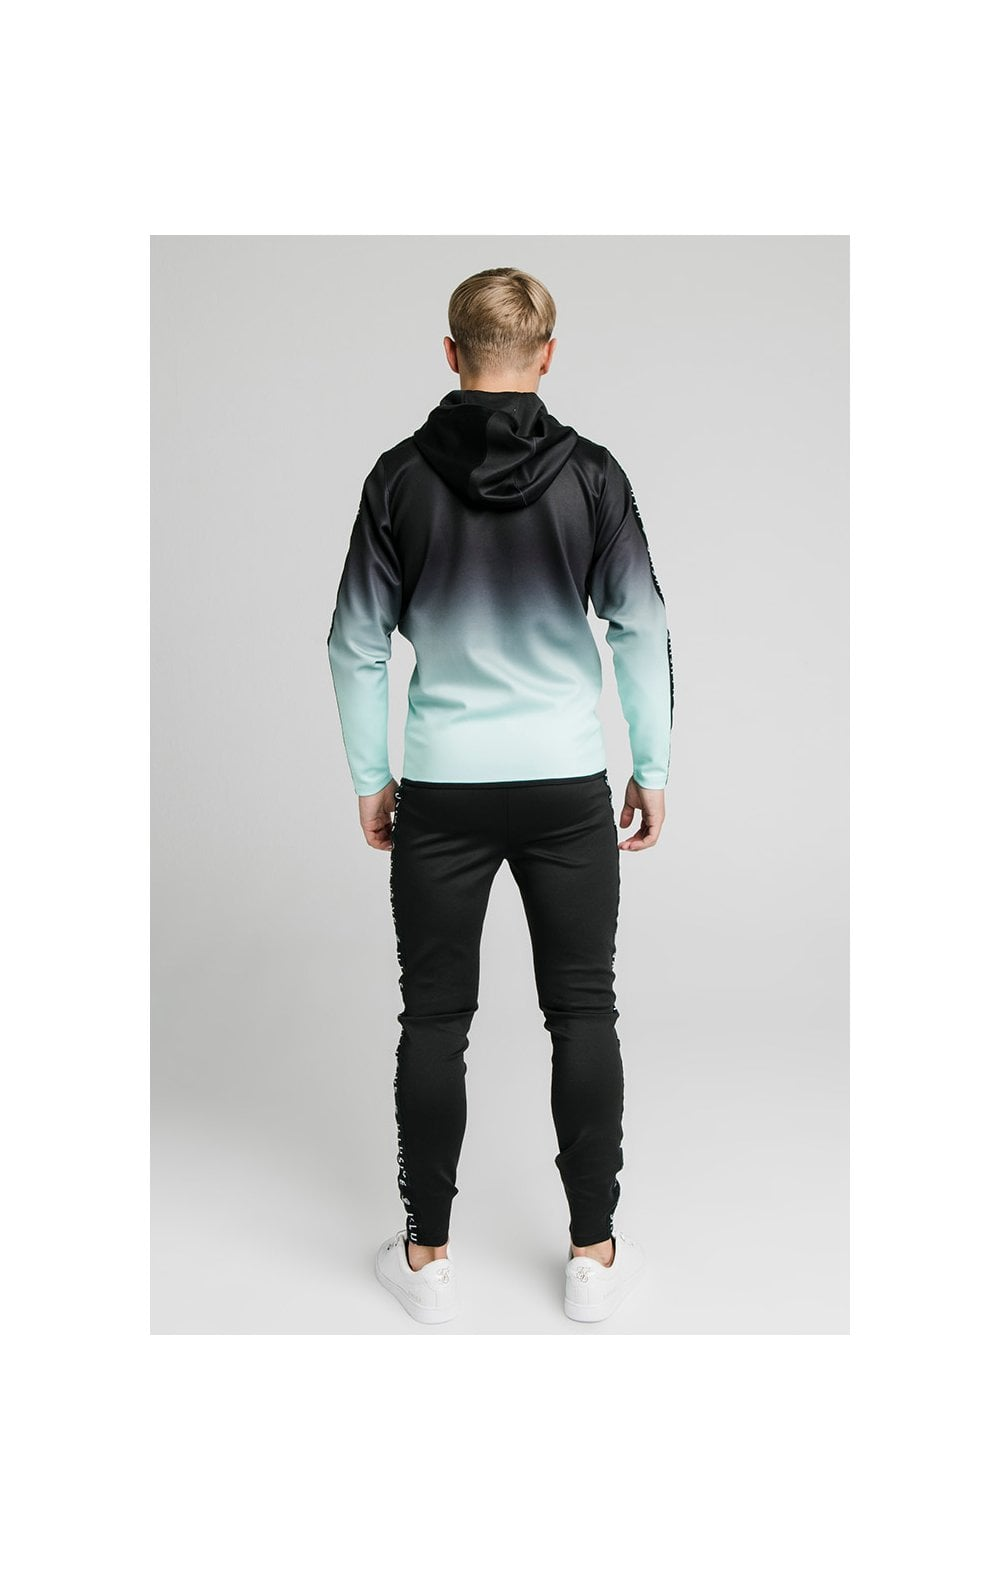 Load image into Gallery viewer, Illusive London Fade Scope Zip Through Hoodie - Black & Mint (4)